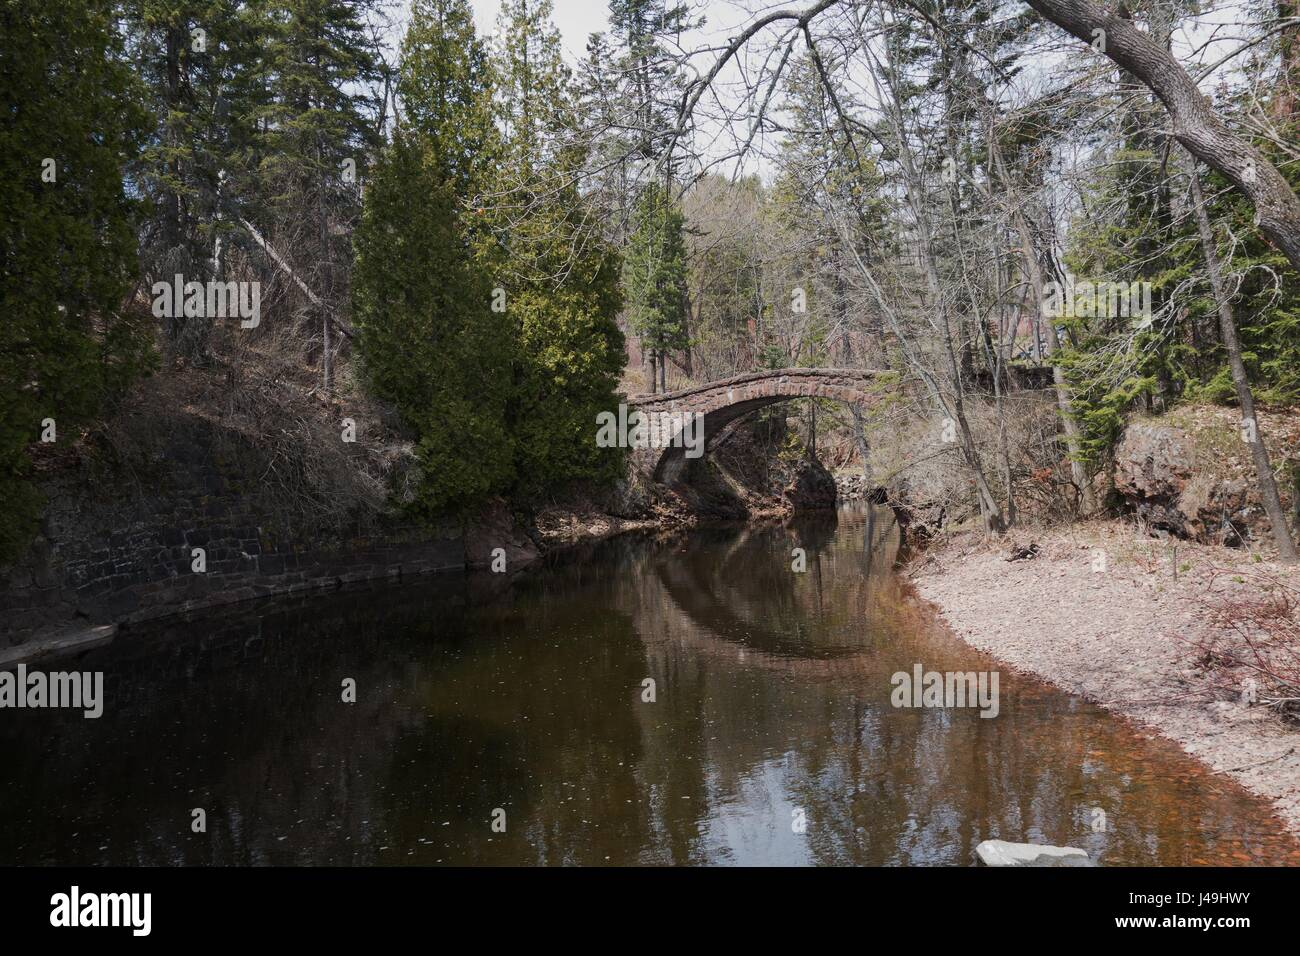 A footbridge over a creek at Glensheen Mansion in Duluth, Minnesota, USA. - Stock Image